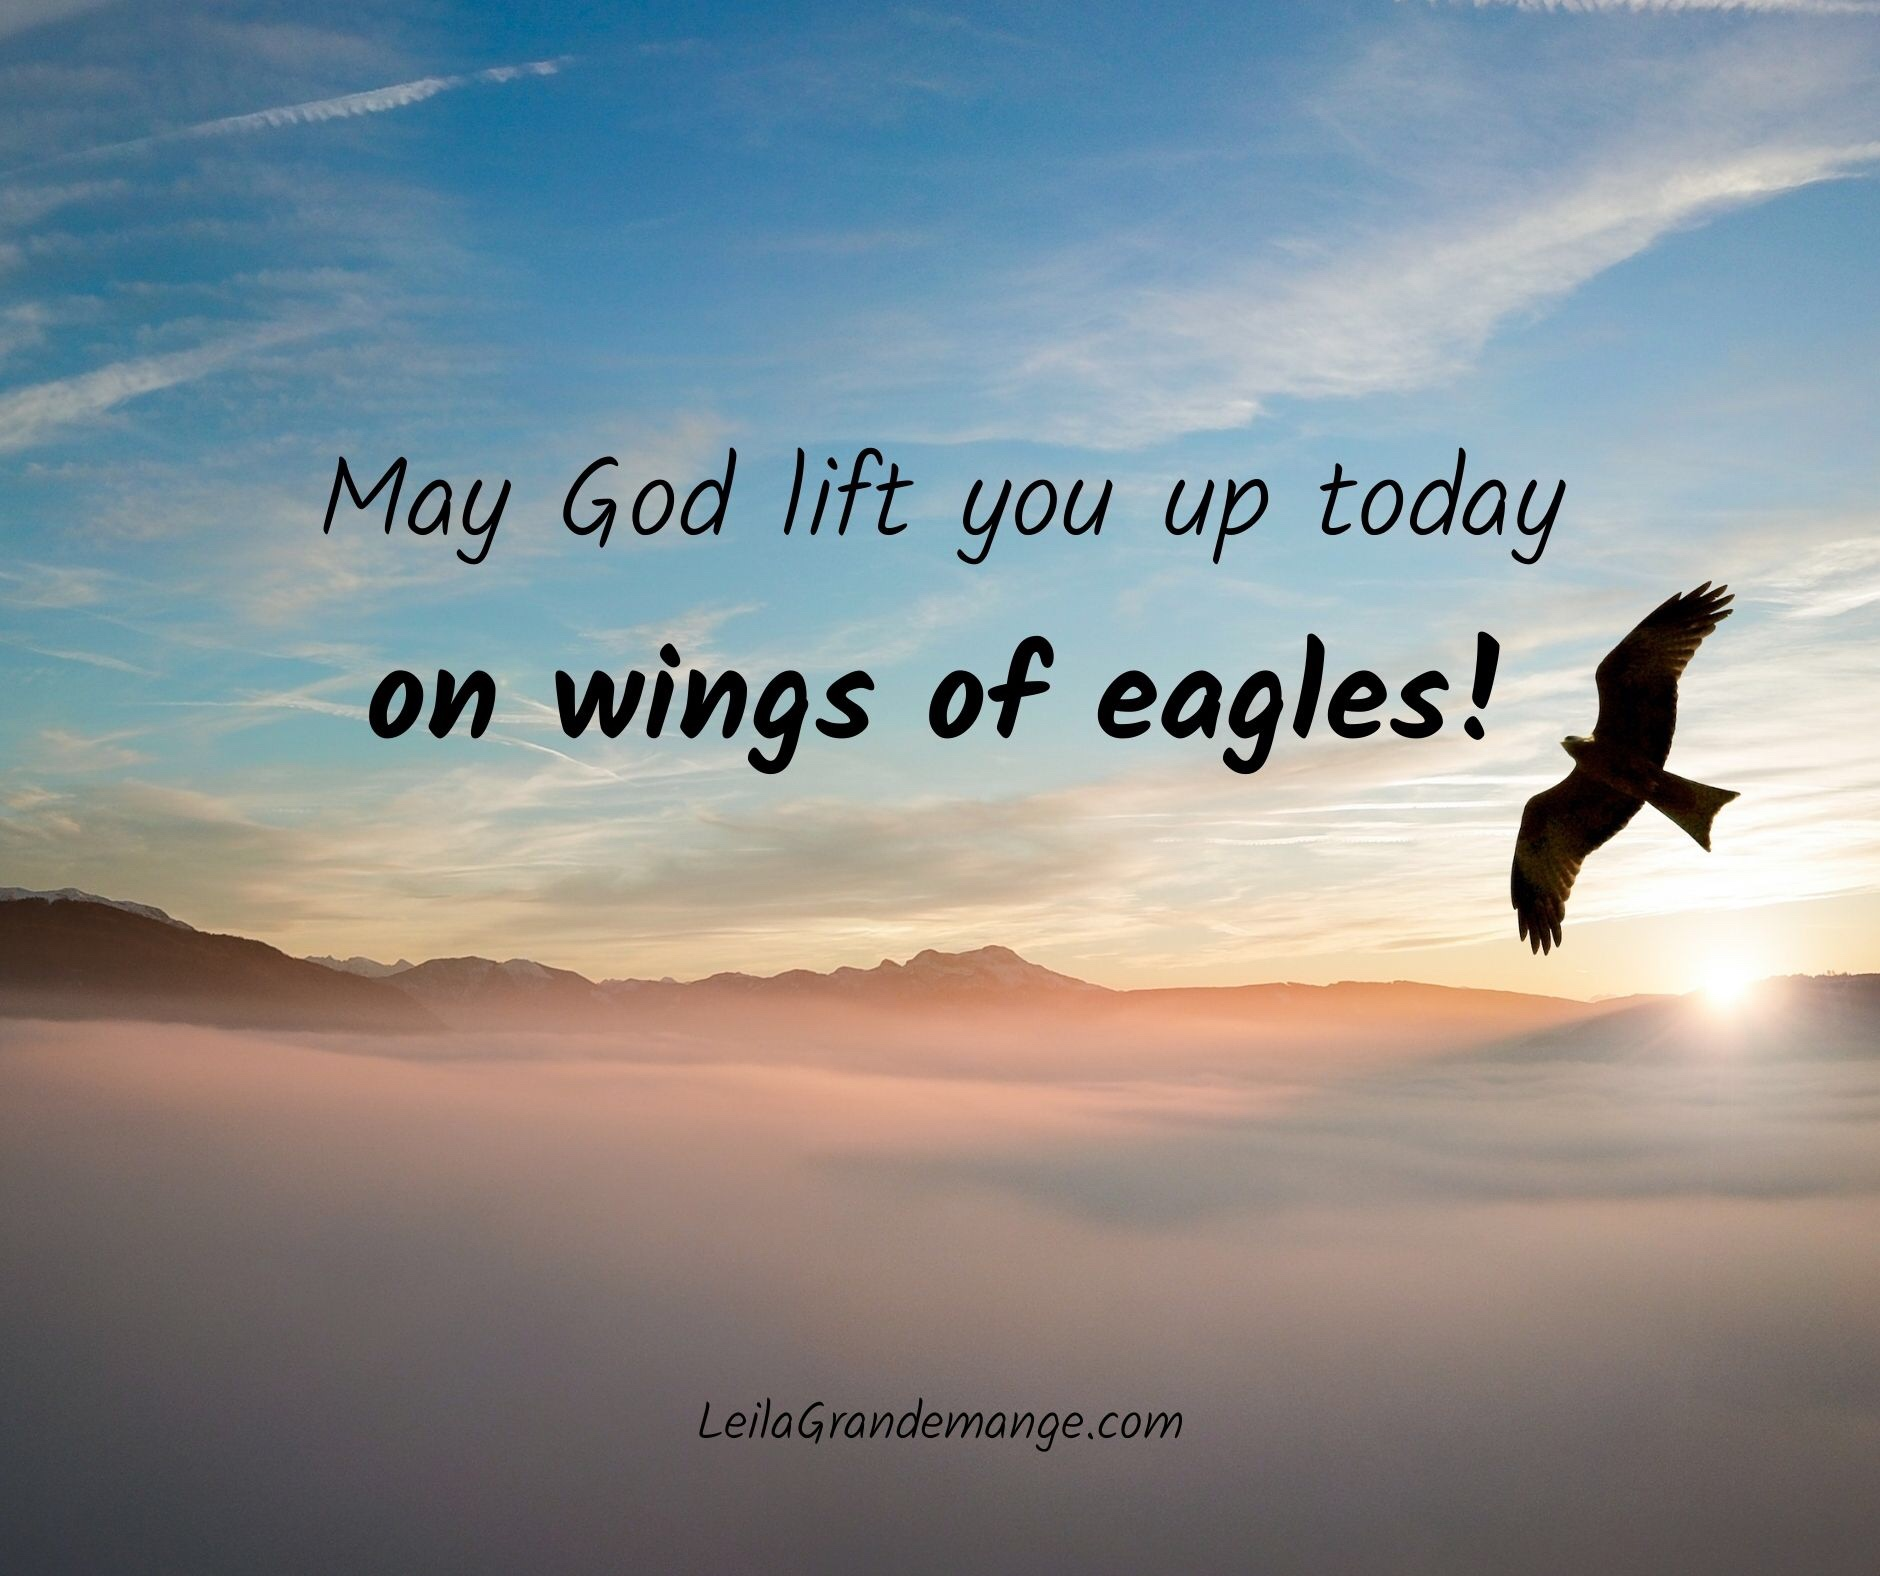 May God Lift You UP! [Encouraging Bible Verse]